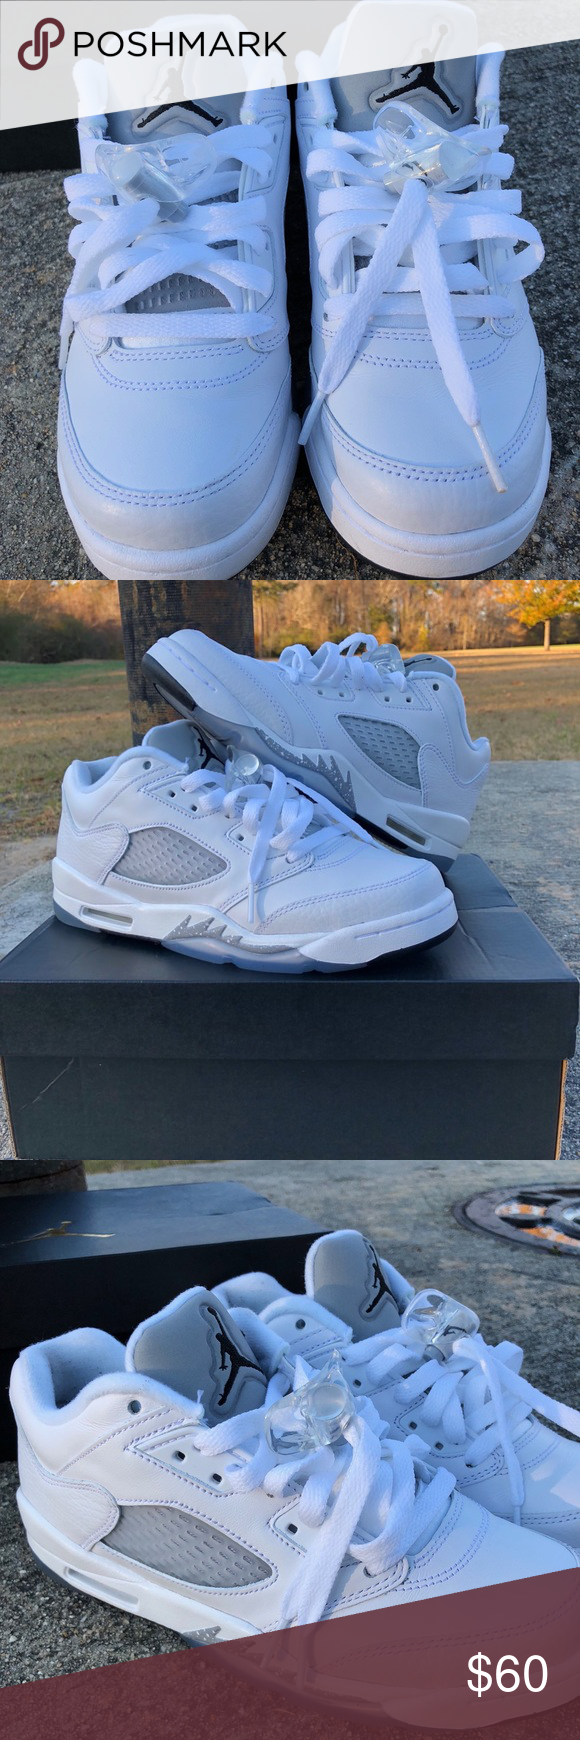 half off 6f83d 4528d Air Jordan 5 Retro Low GG (GS) Size  5.5Y Color  white wolf grey black 2016  release Comes with box   Originally  109 on Flight Club   Message me with  any ...